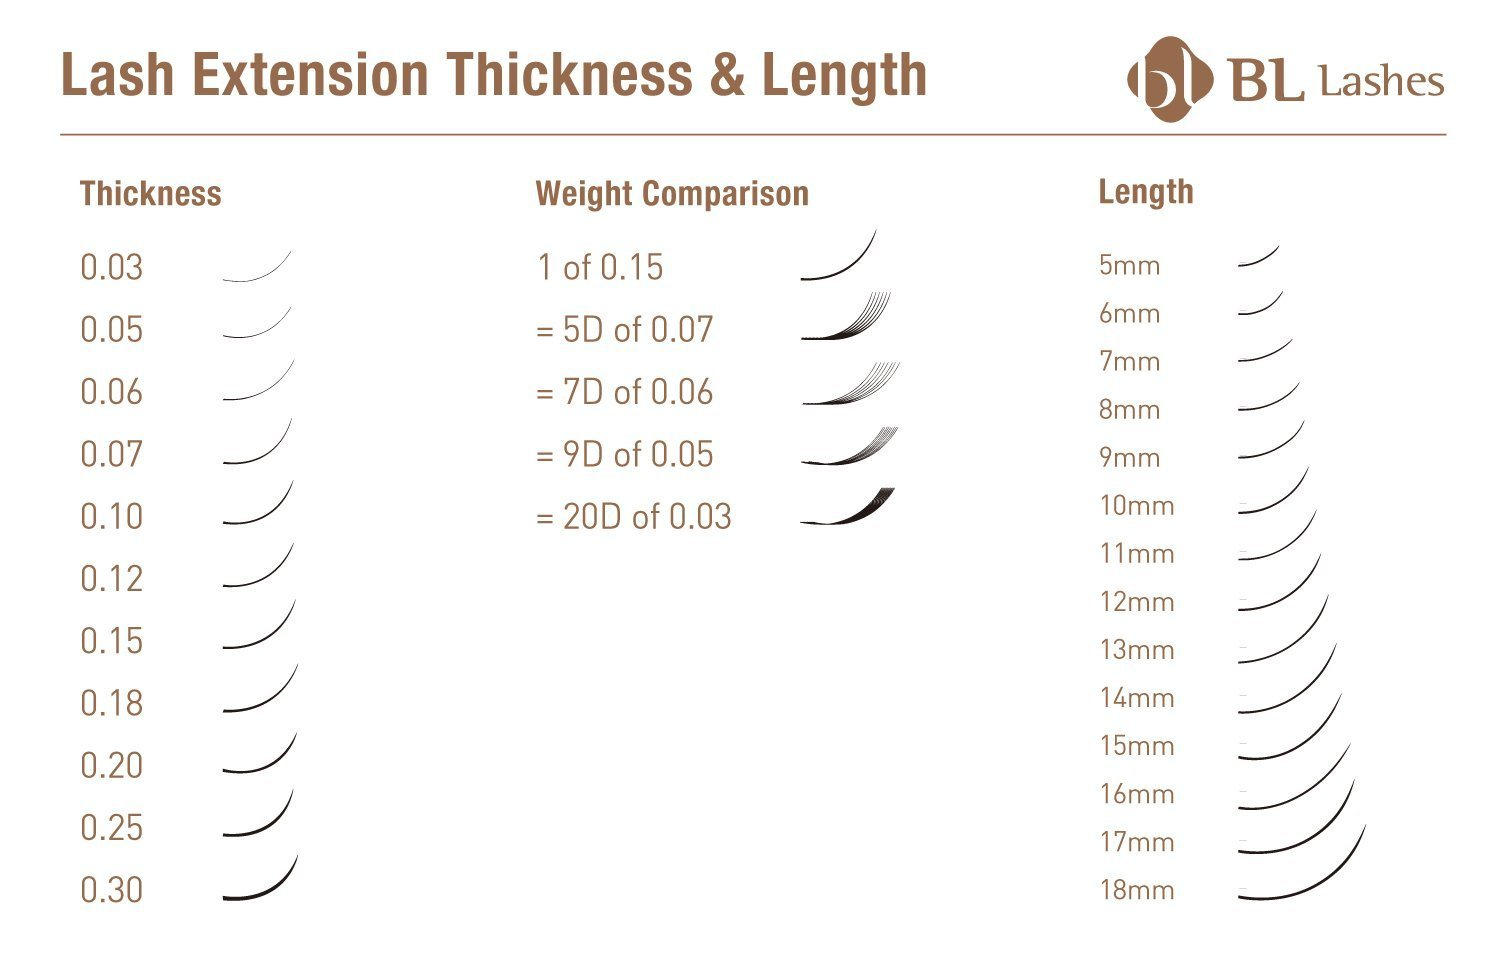 flat Lash extension thickness and weigh by BL and Blink lashes - eyelash extension supplies from South Korea